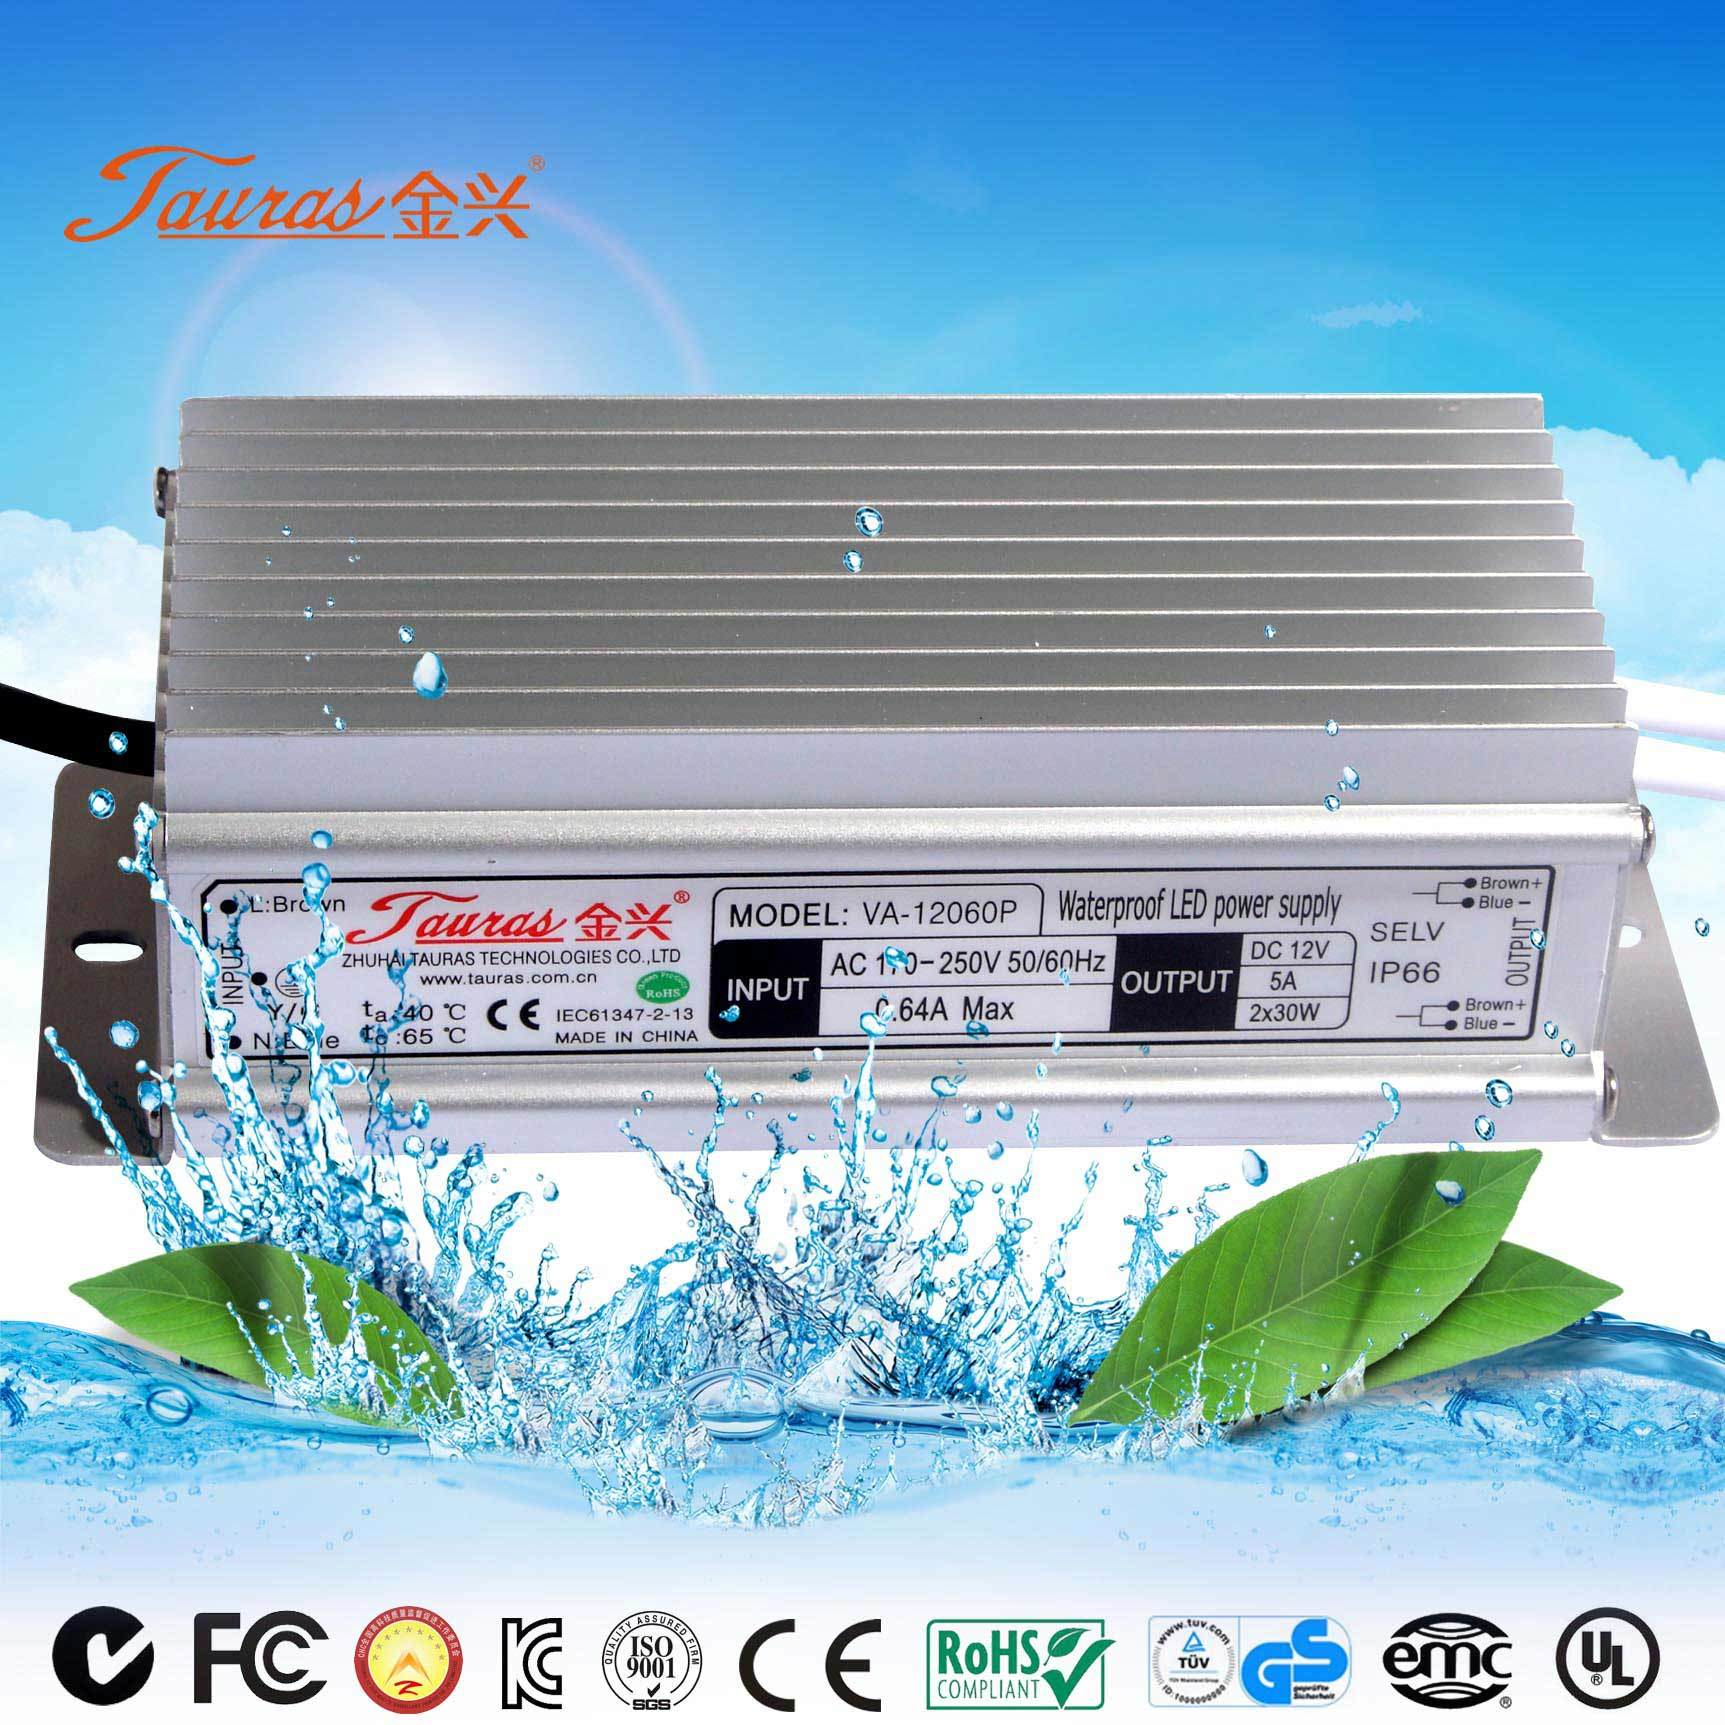 China Emc Approval 12v 60w Led Driver For Lighting Lp 12060p 12 150w Circuit Manufacturer Lights View Power Supply